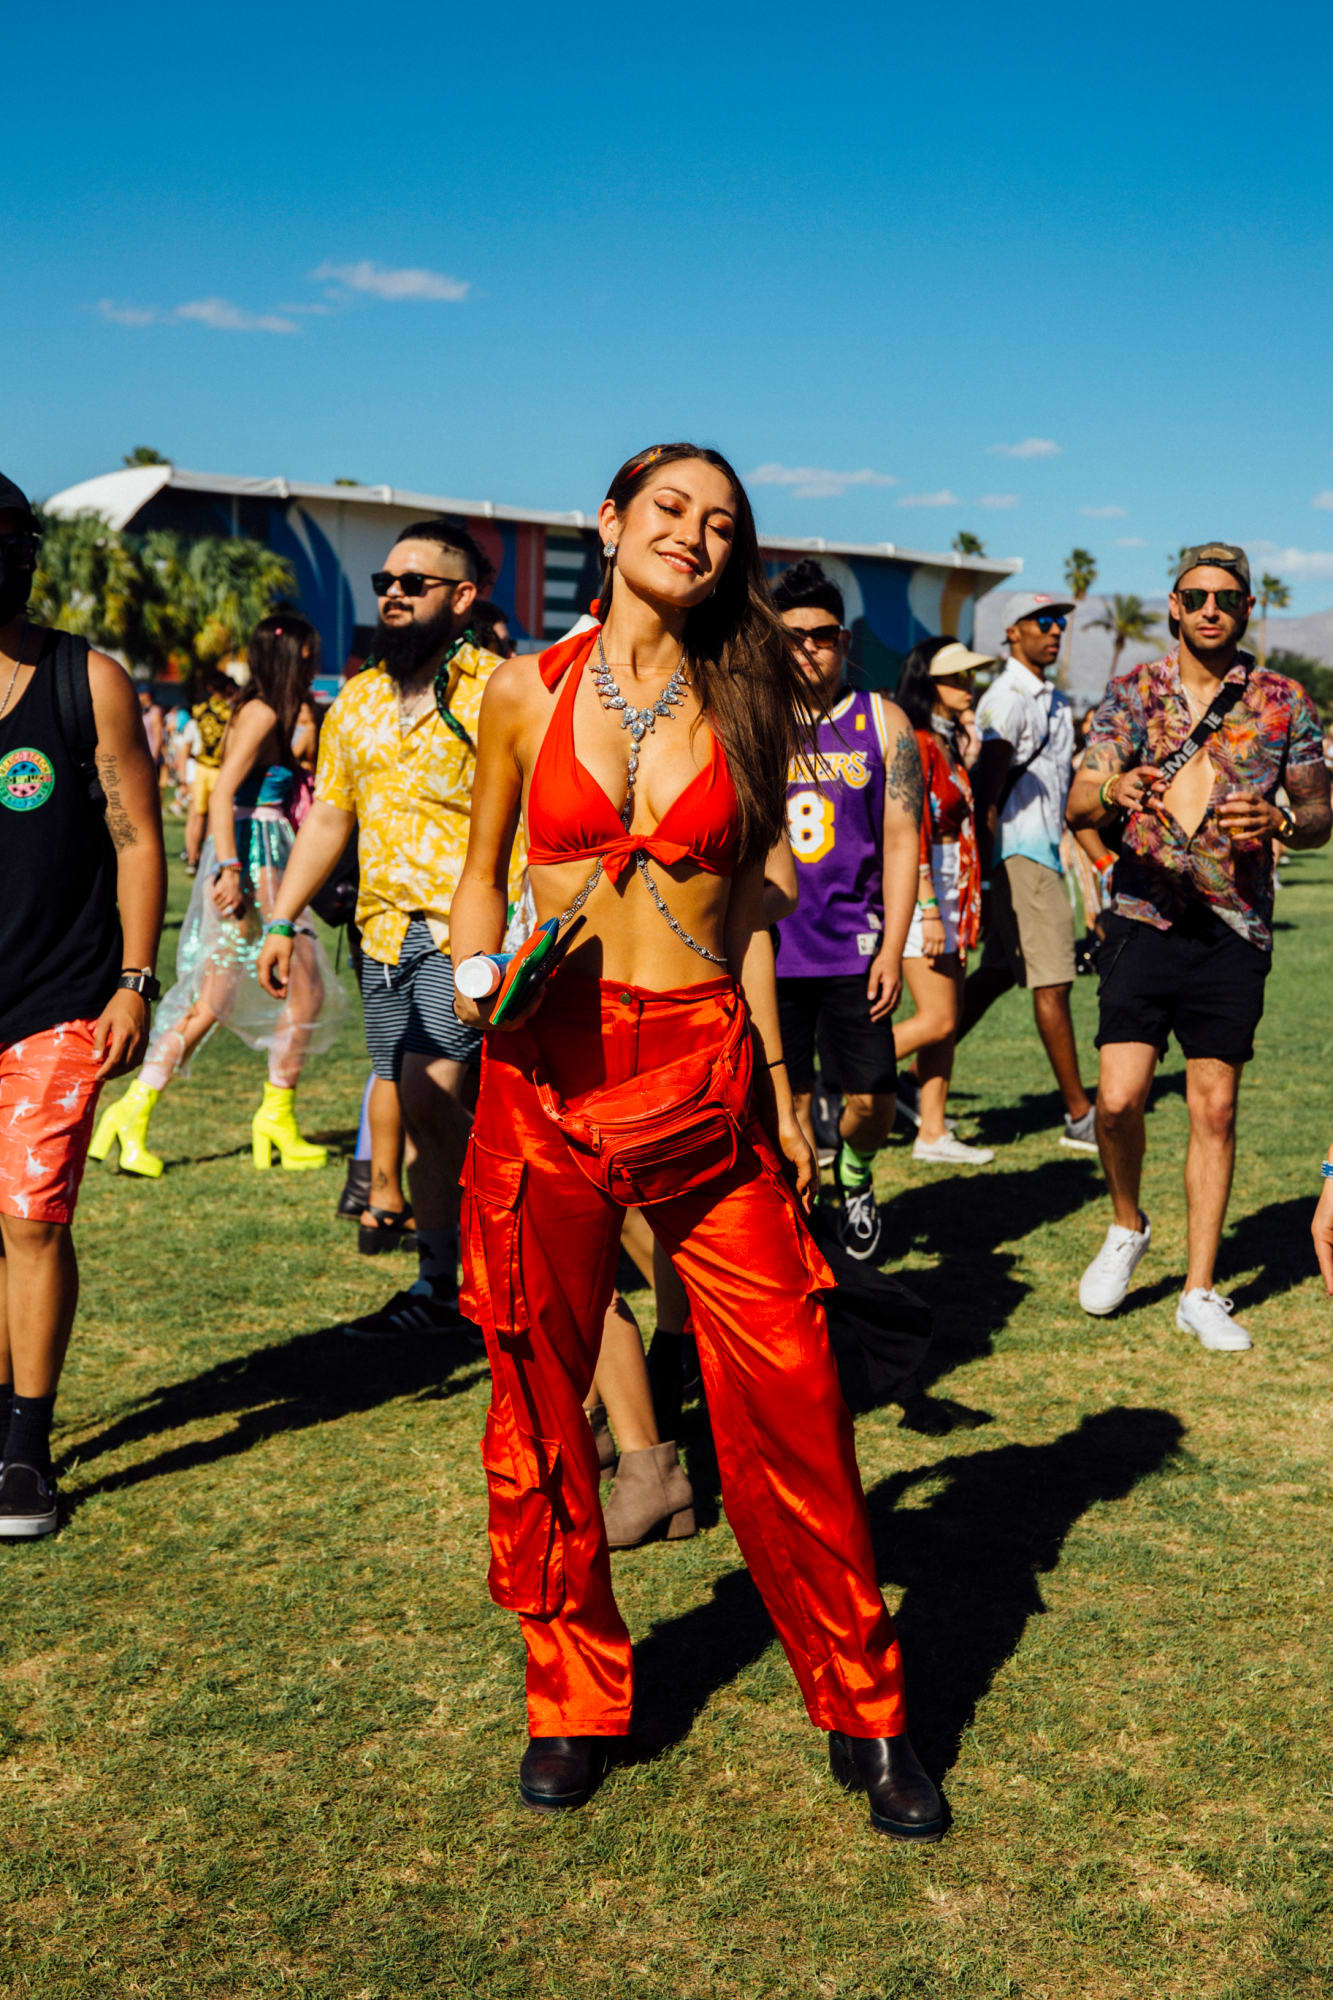 coachella-festival-fashion-street-style-weekend-1-2019-1.jpg